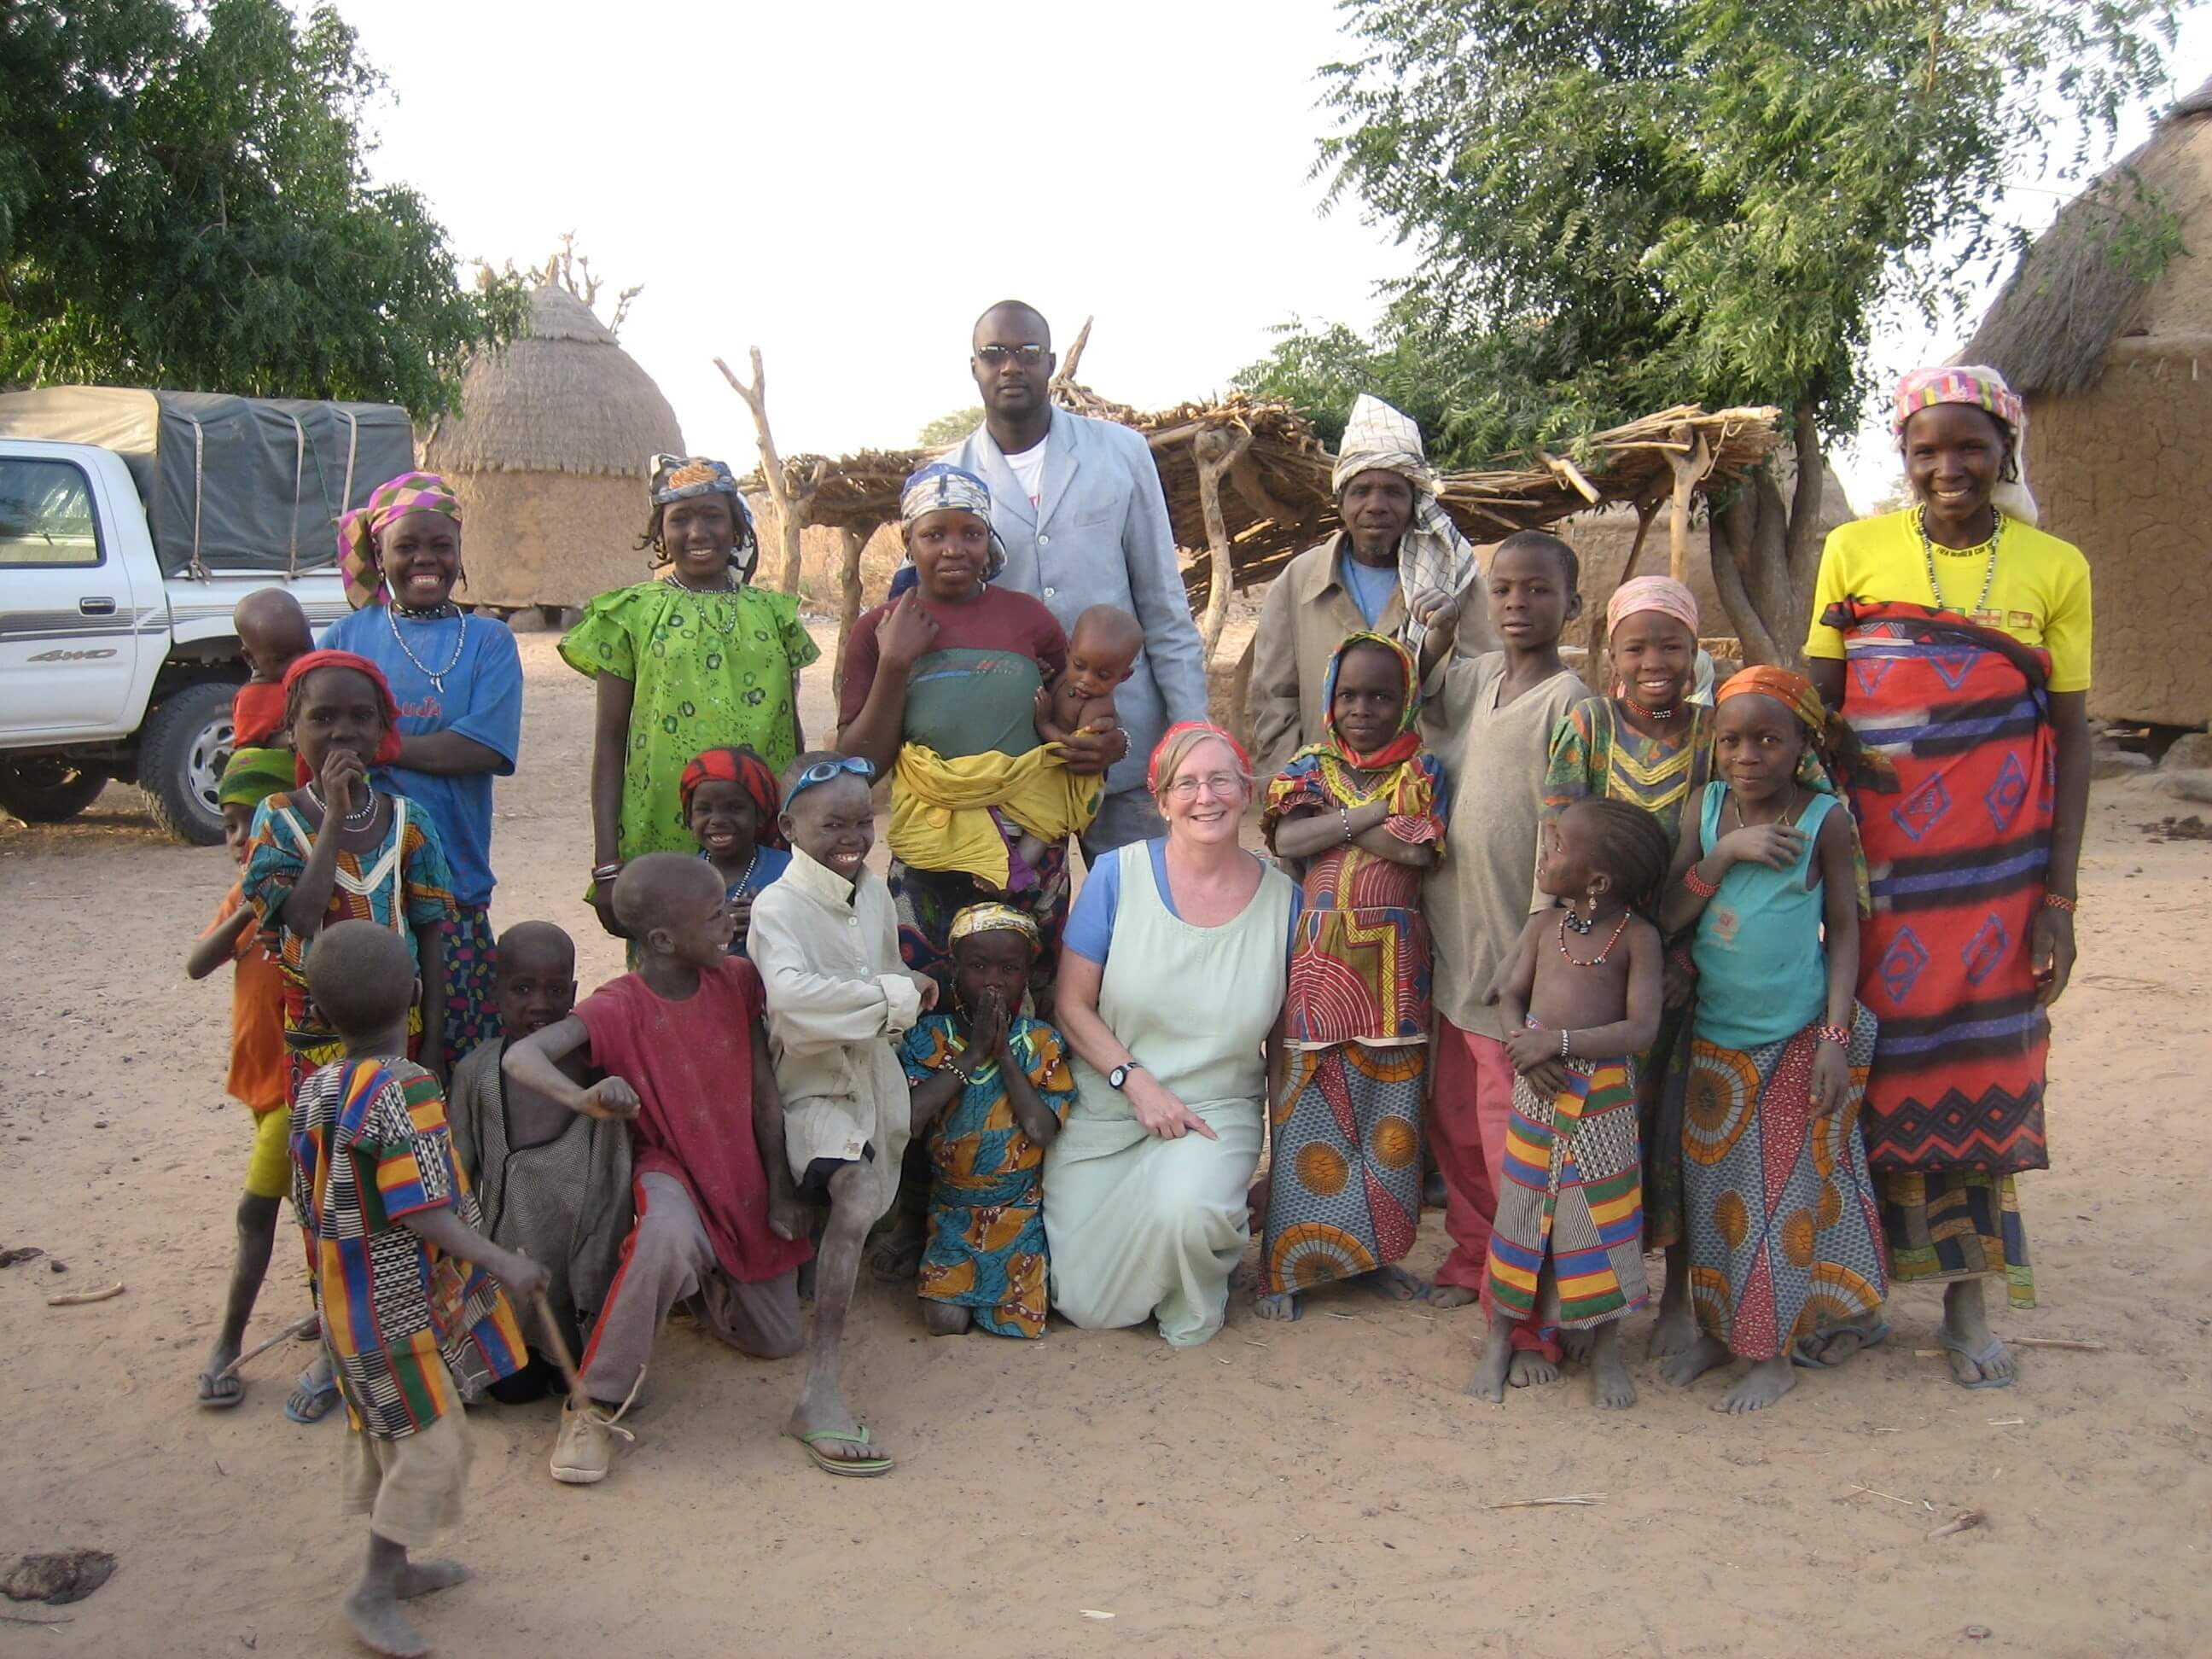 Sheila West visits with patients in africa